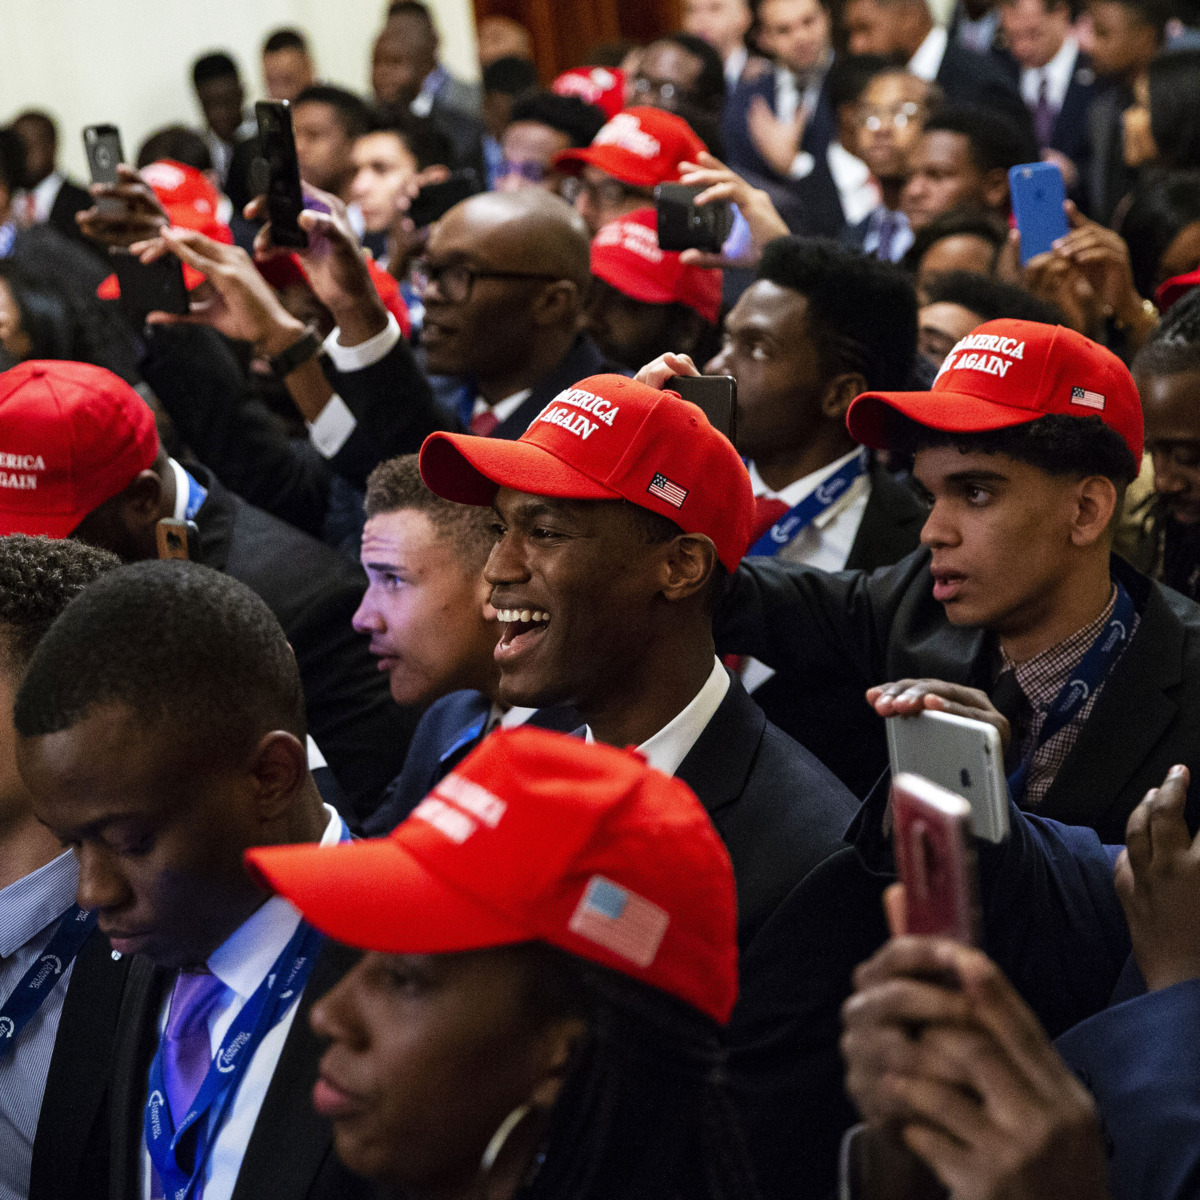 Rasmussen poll: President Trump's approval rating among black voters hits all-time high in the wake of rioting…